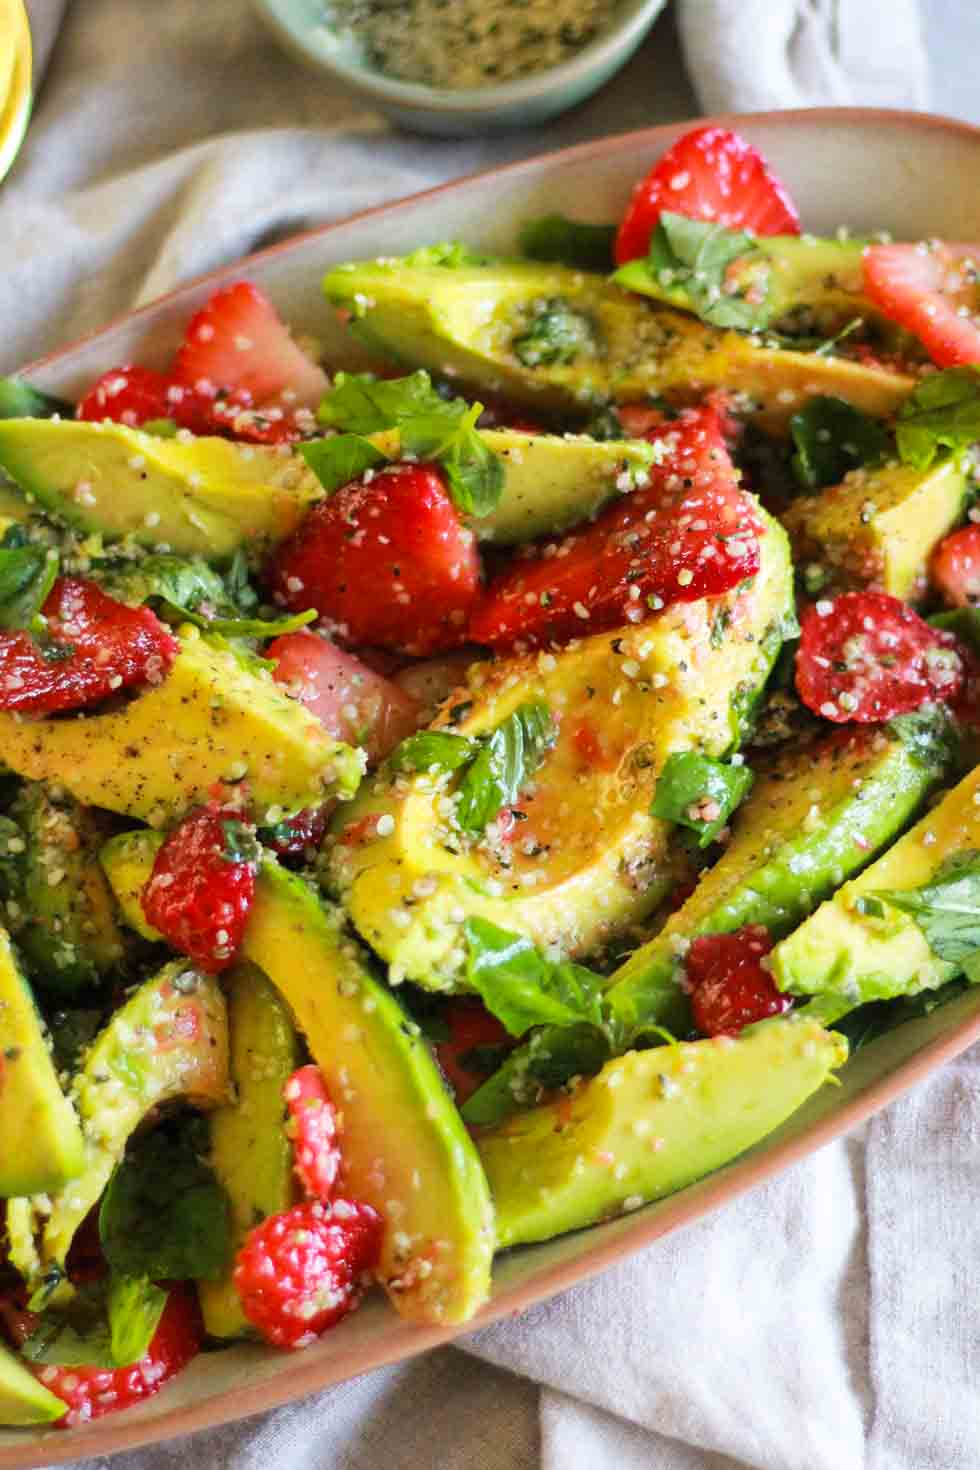 Closeup of Strawberry Avocado Salad on beige platter.